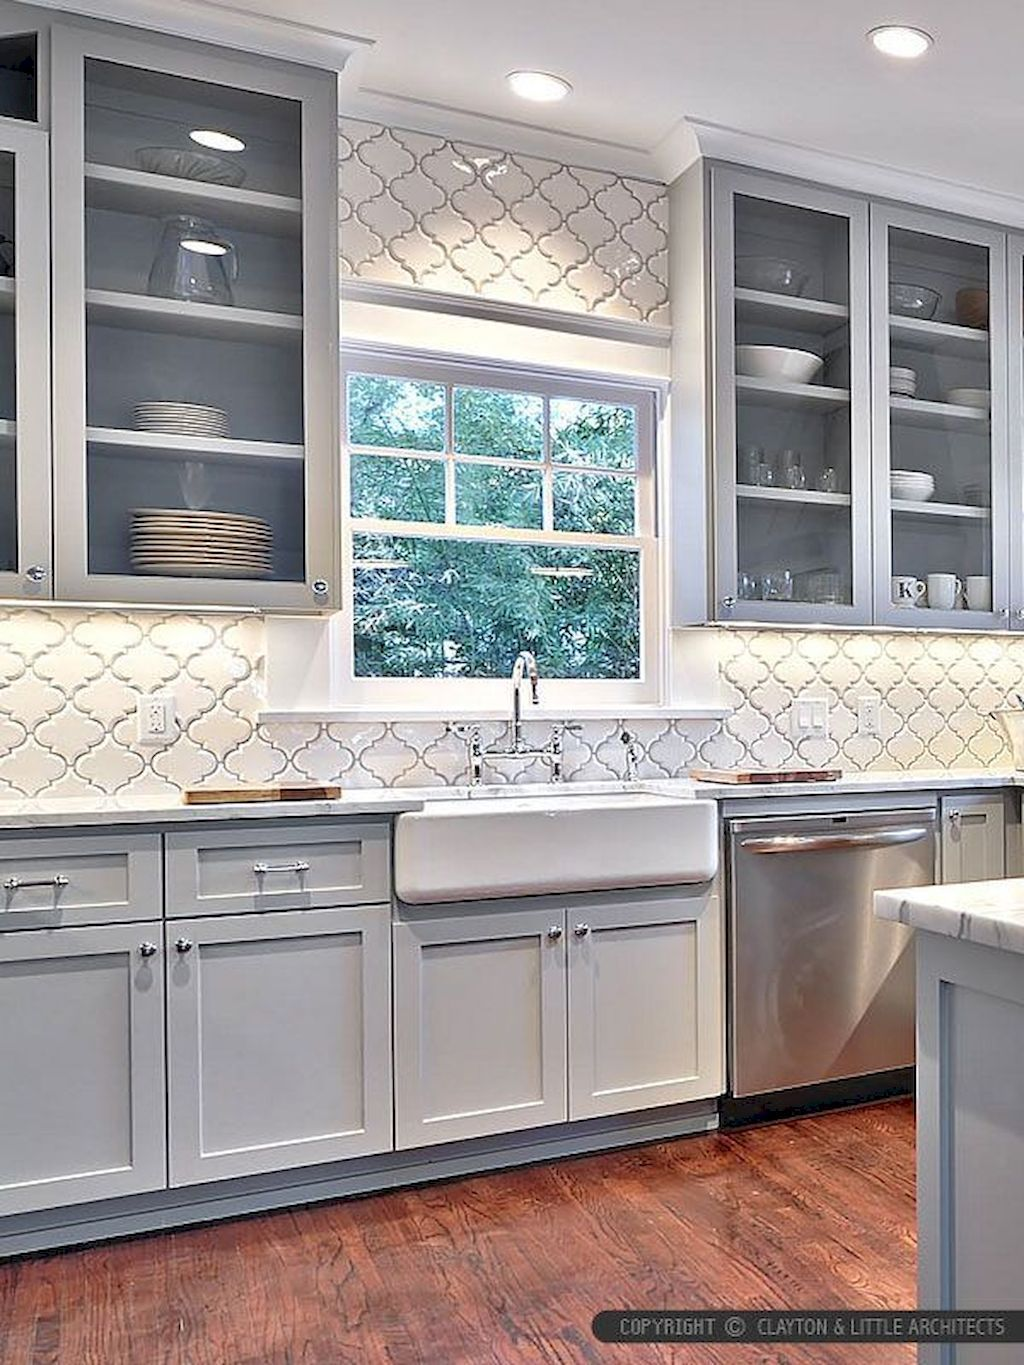 60 fancy farmhouse kitchen backsplash decor ideas (8 | kitchen ideas ...